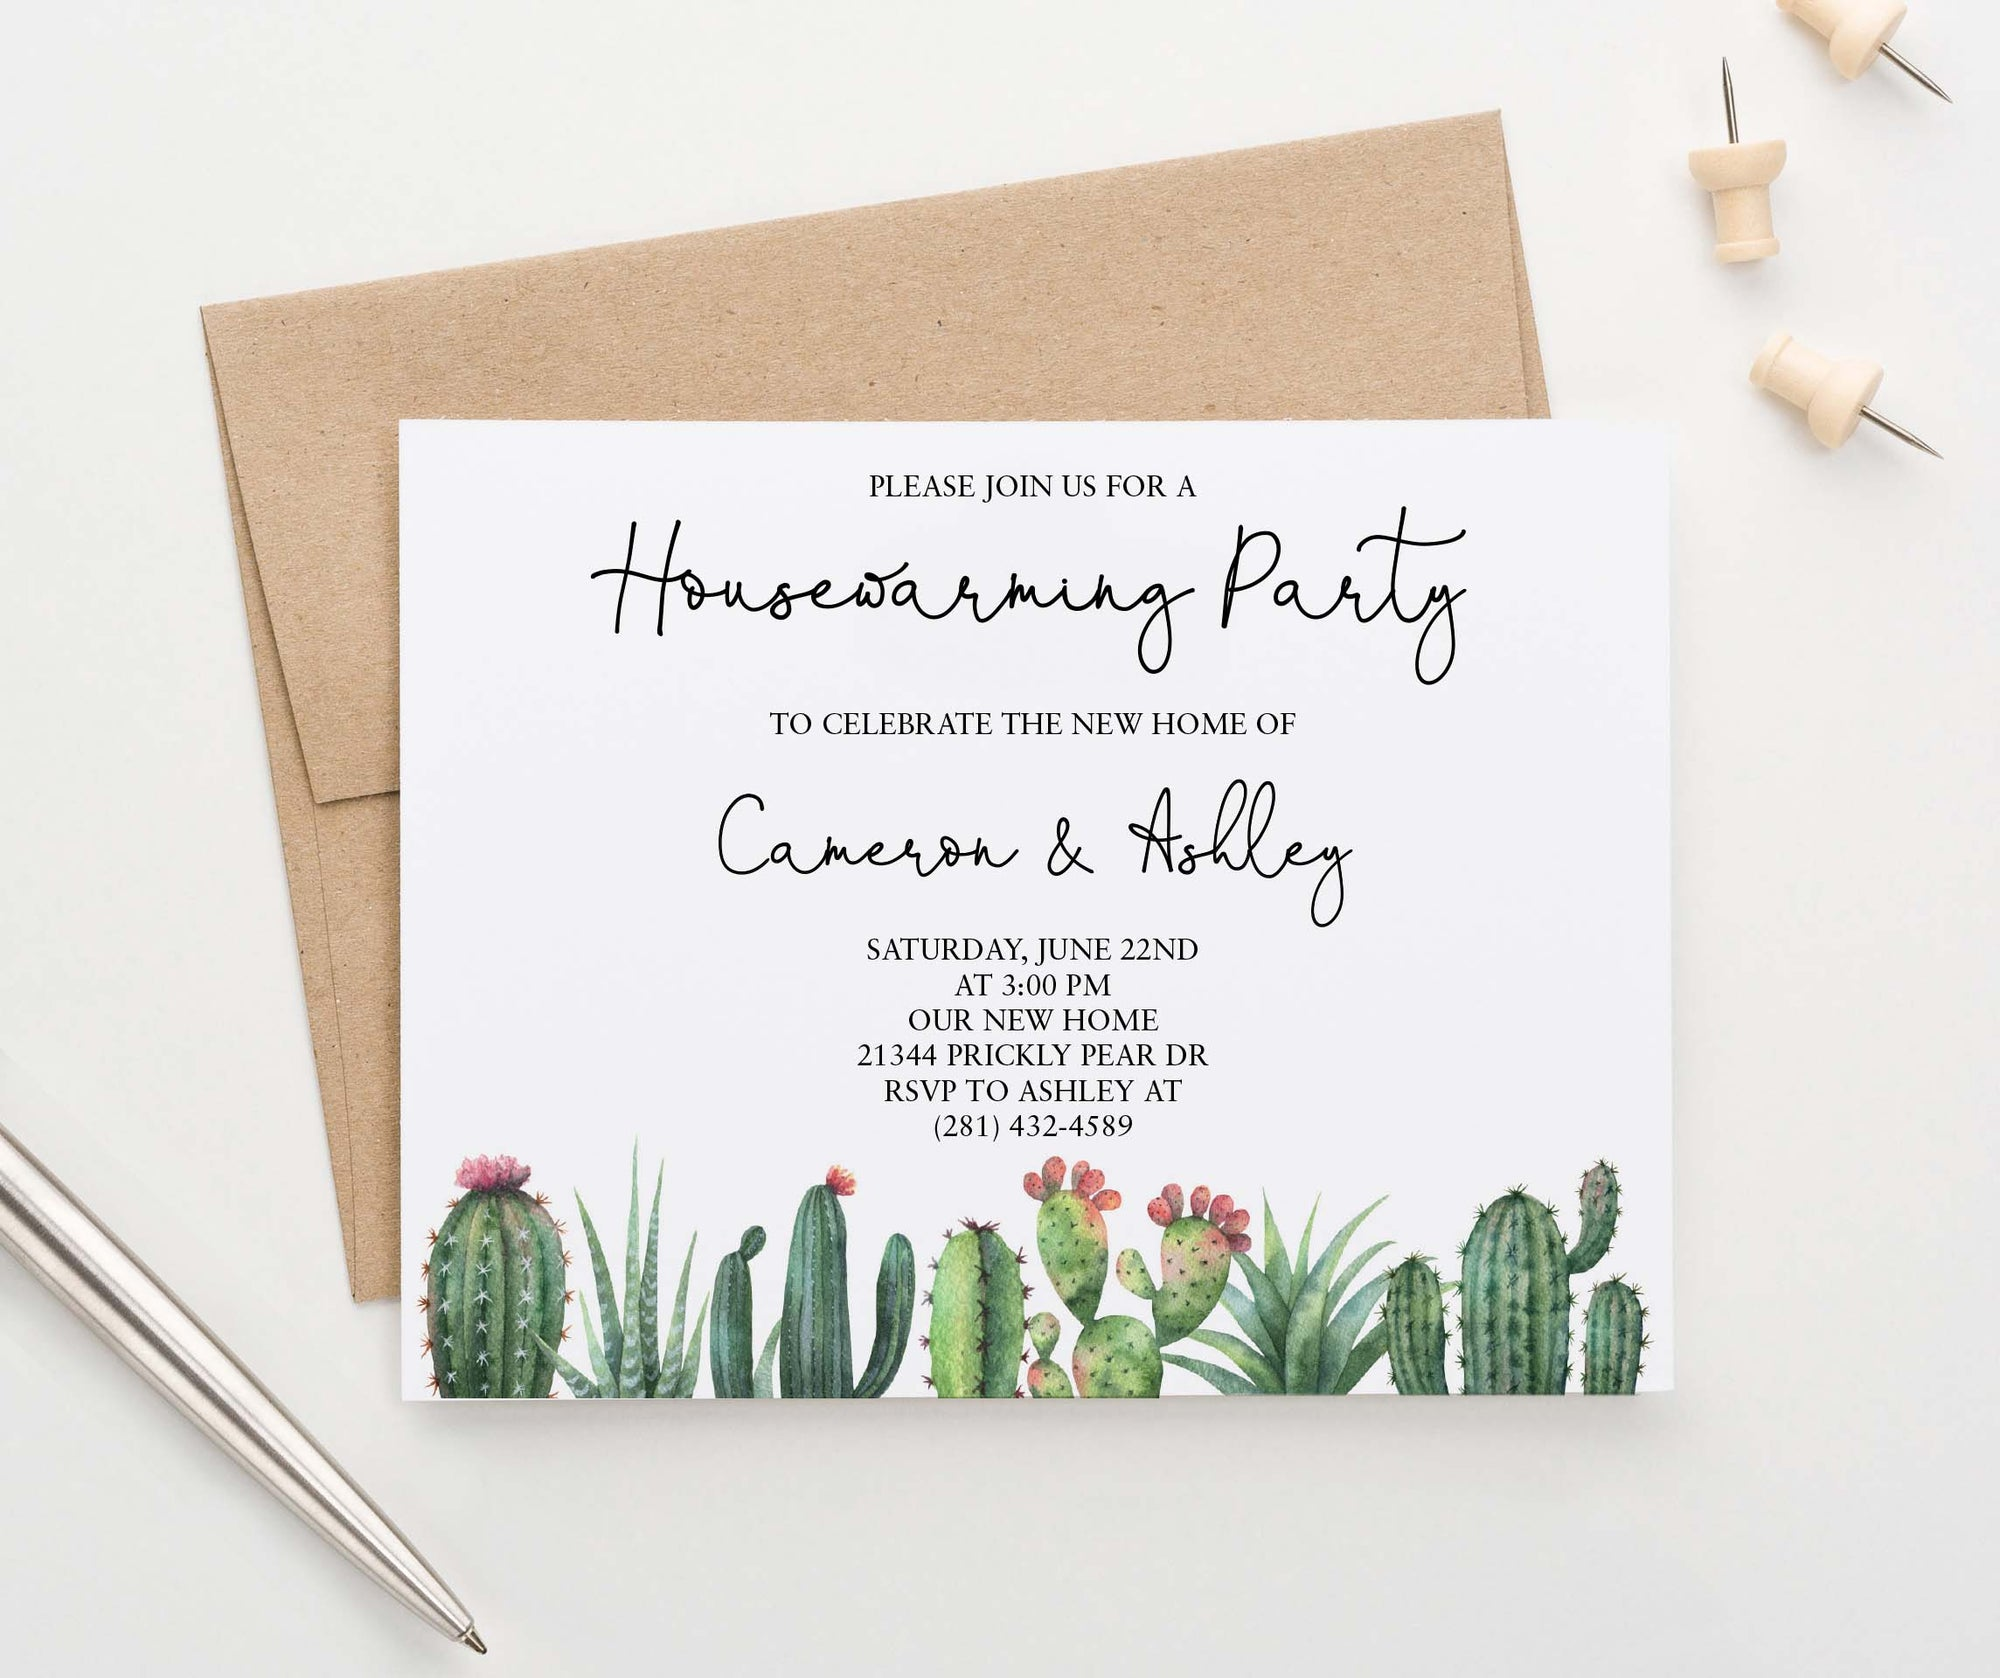 HPI017 personalized elegant housewarming party with cactus succulents greenery